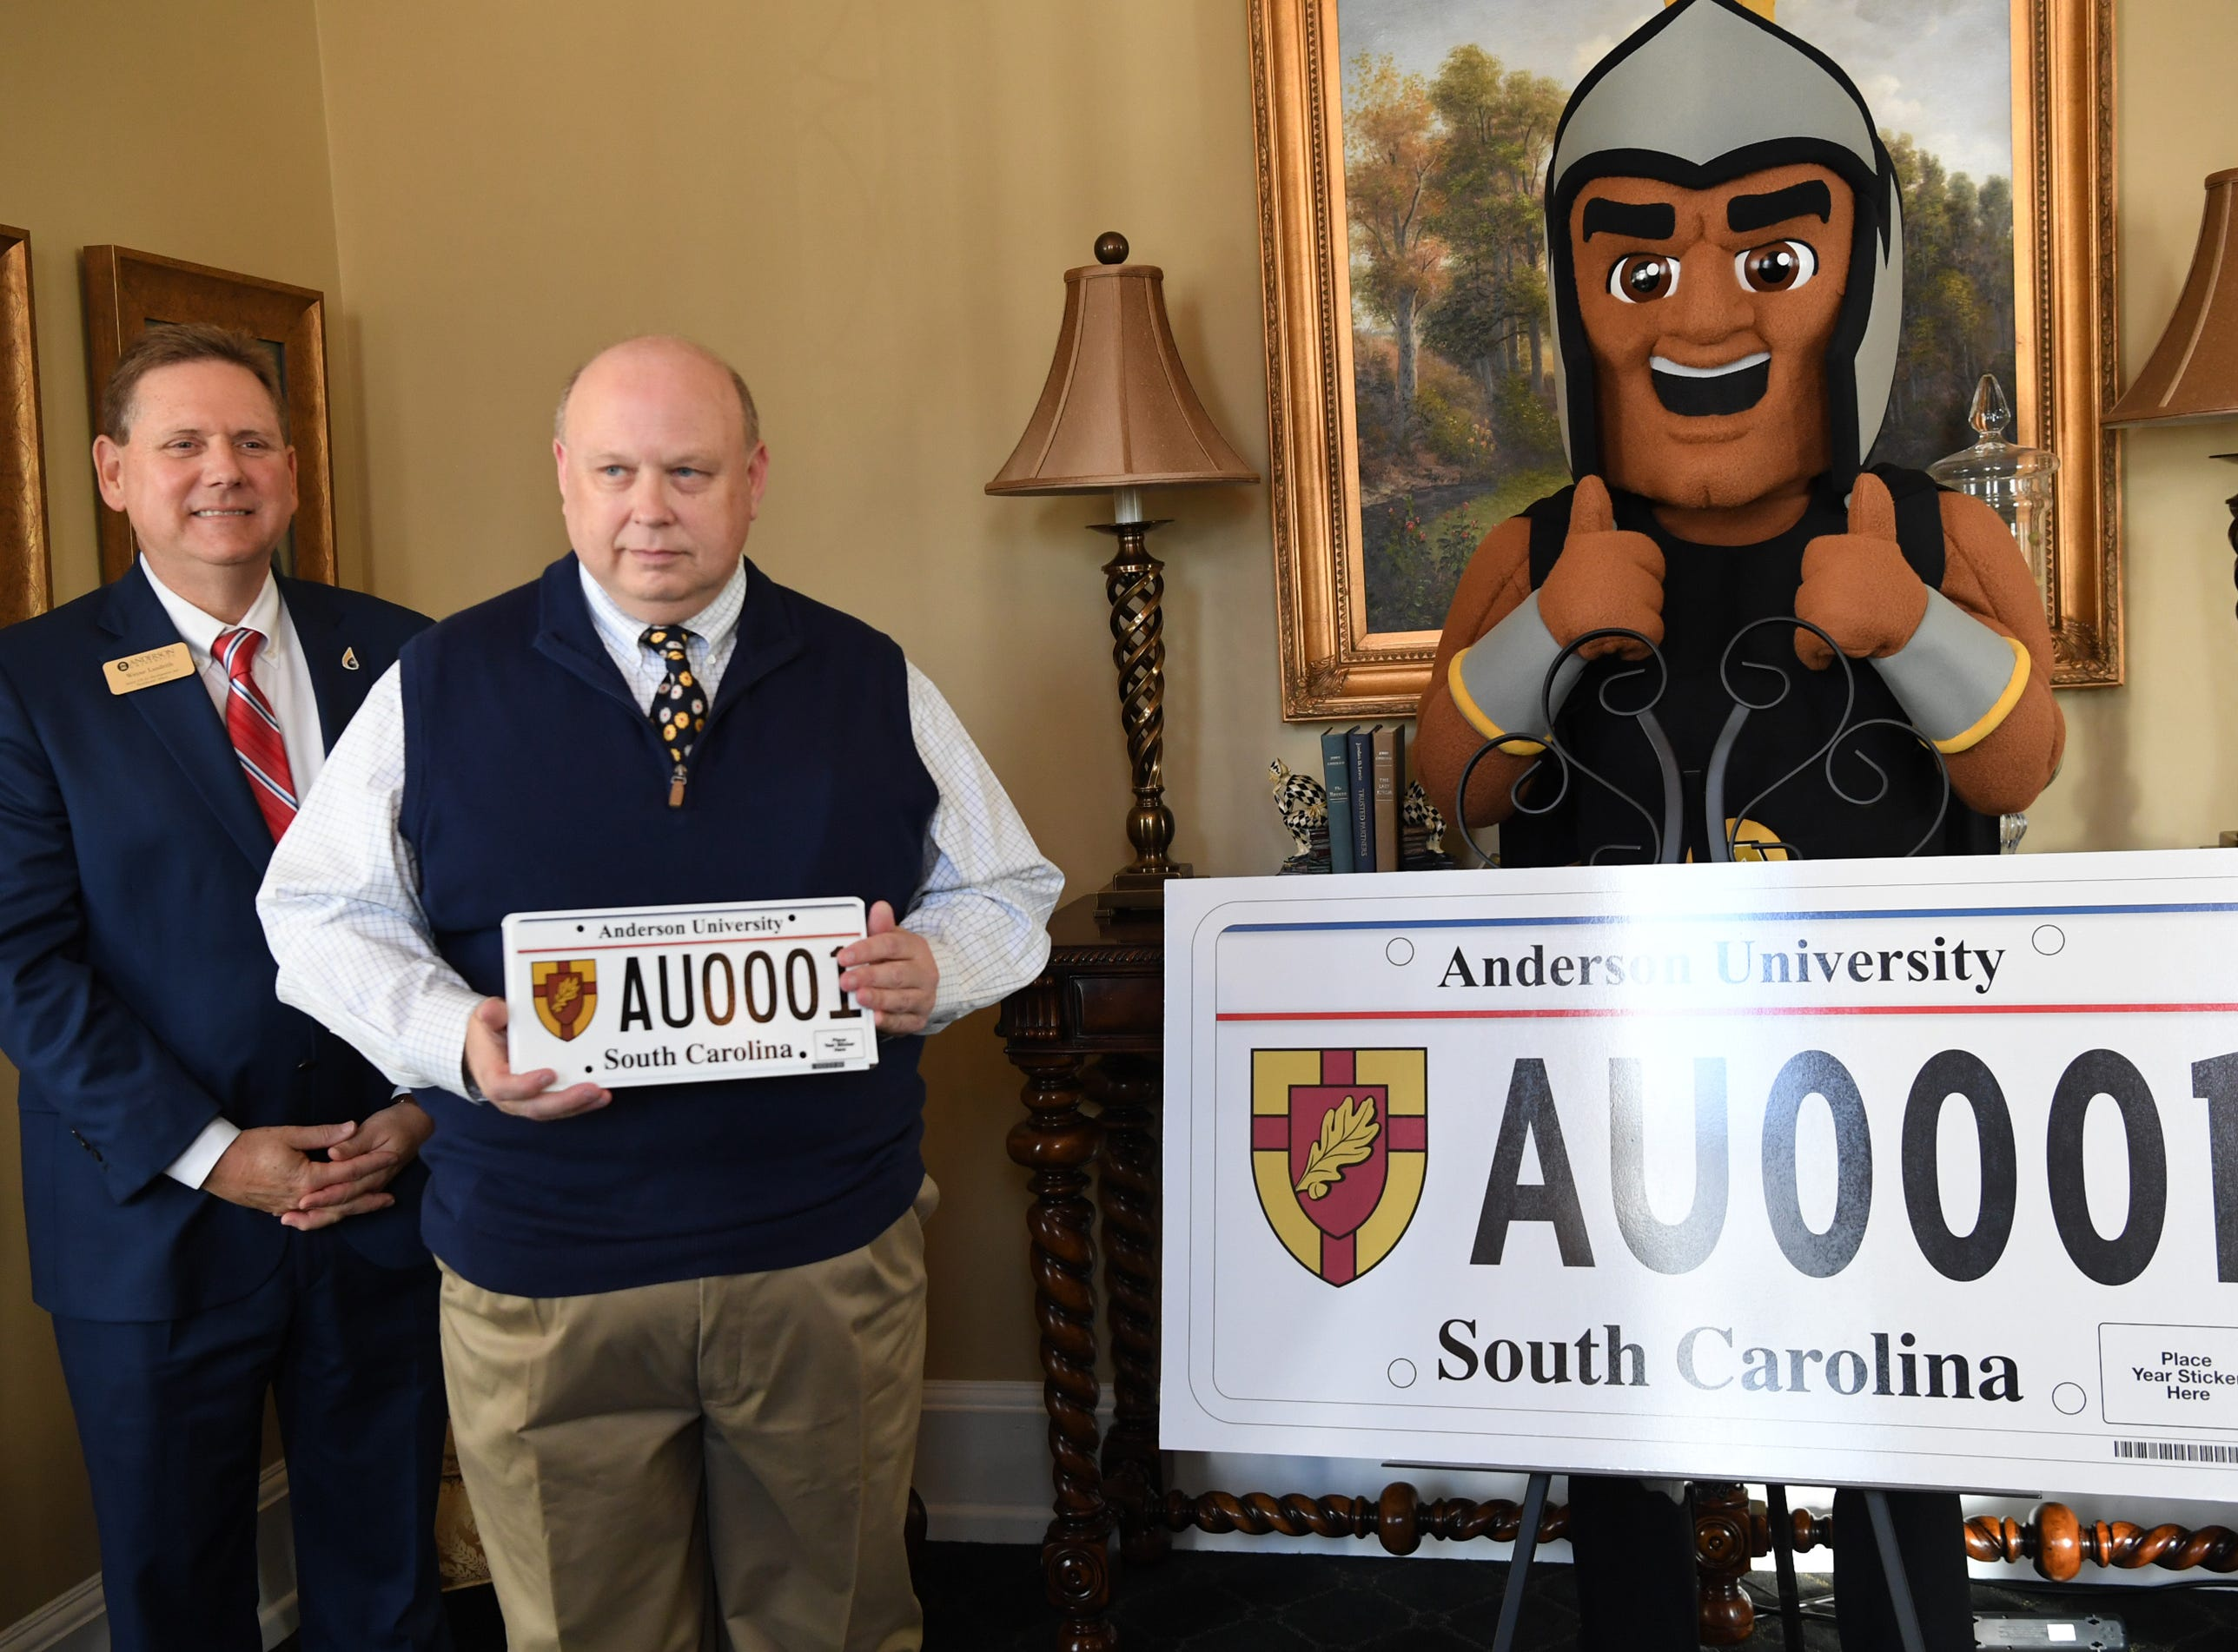 Wayne Landrith, left, President Evans Whitaker, middle, and Troy the Trojans mascot of Anderson University show other officials a new personalized license plate during a press conference at the campus administration building in Anderson Friday morning. The University plate, along with Clemson University and the University of South Carolina, are the only college or university plates available to personalize, said Perkins-Brown. The Anderson University plates can be applied for starting Monday, January 28, 2019 in person, not online, for $100 and an added fee if personalizing.